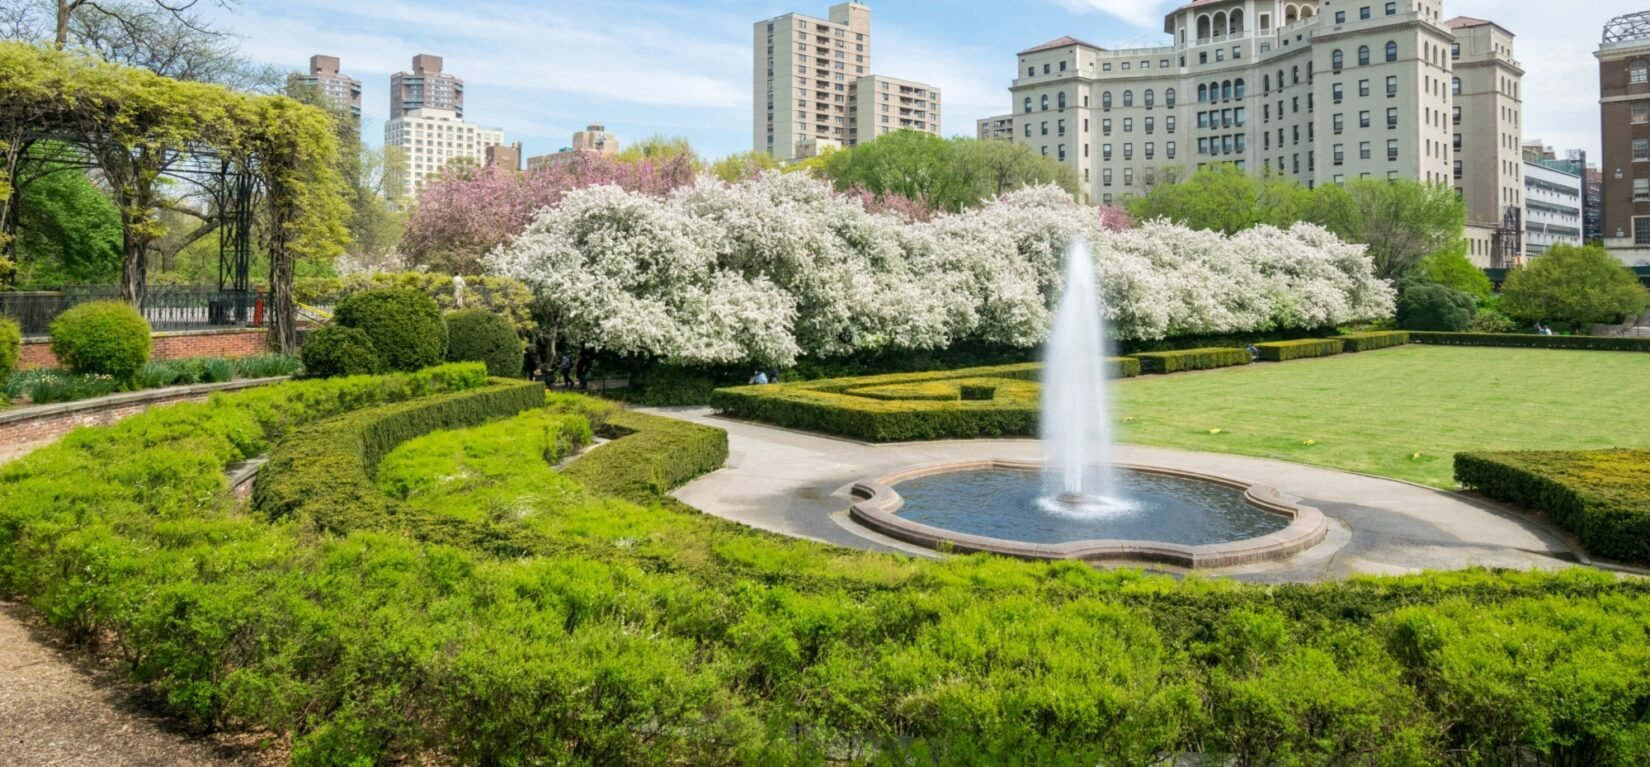 A view of Conservatory Garden featuring the fountain and a section of the pergola